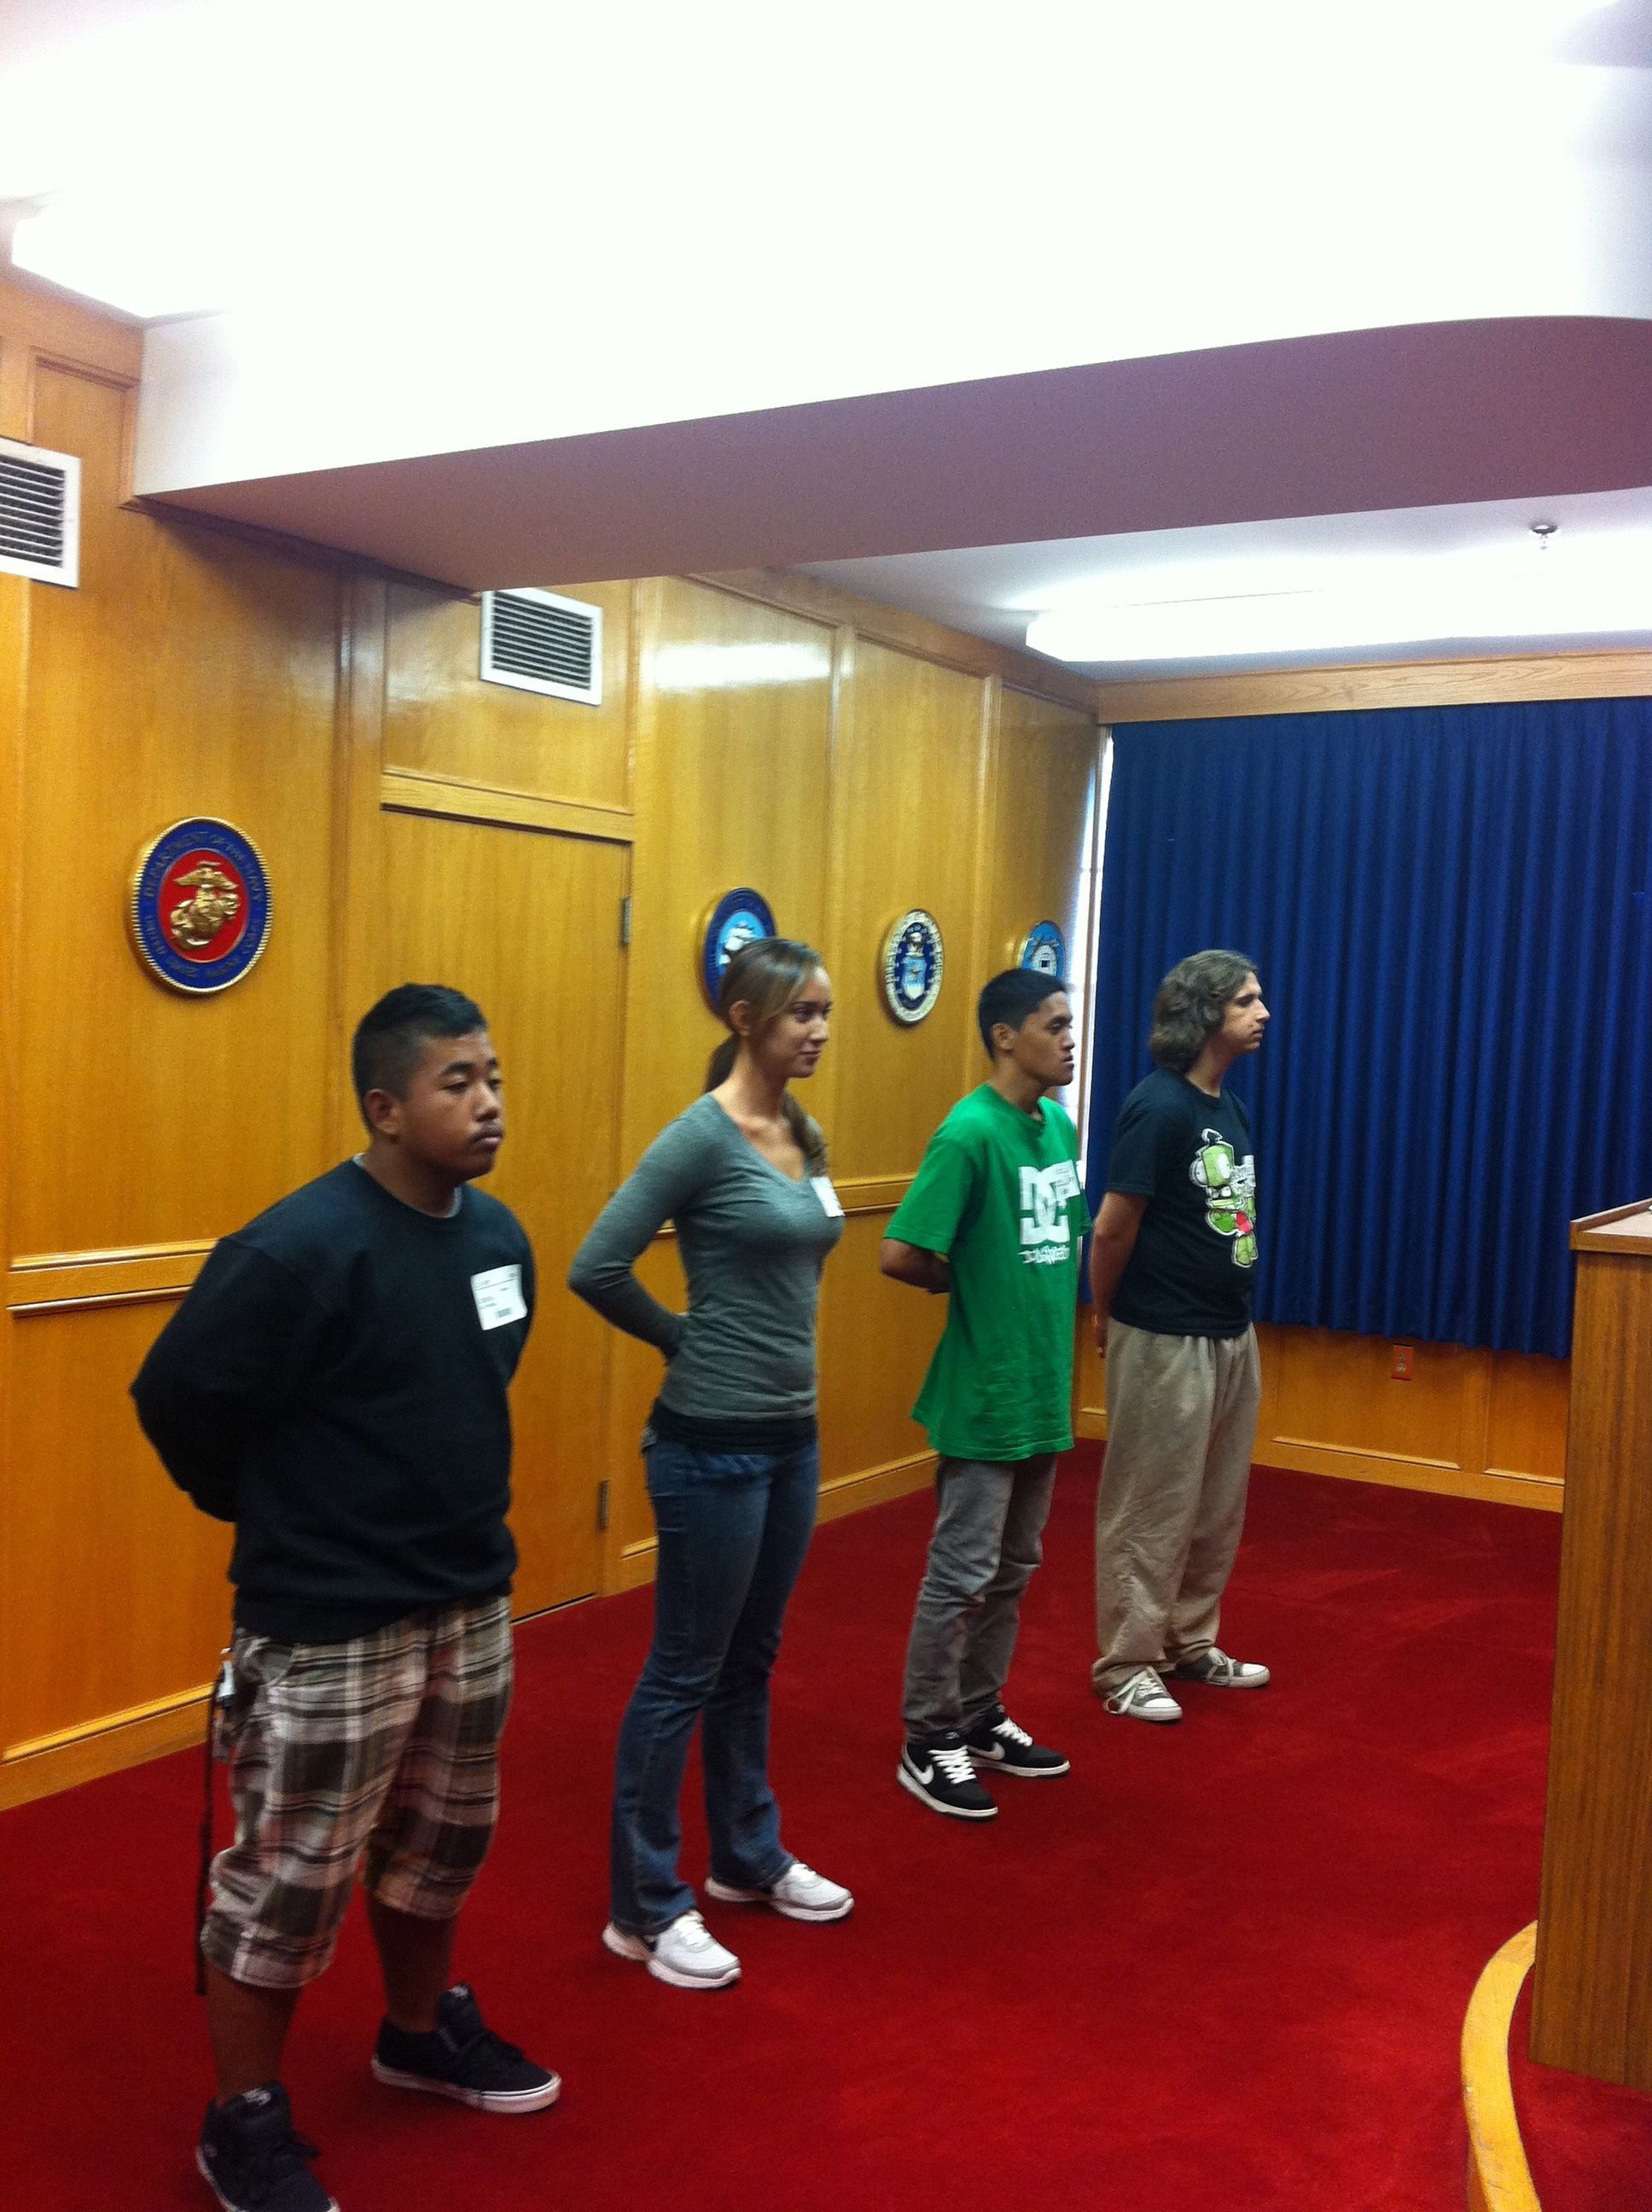 Enlistment into the Hawaii Army National Guard at Honolulu MEPS